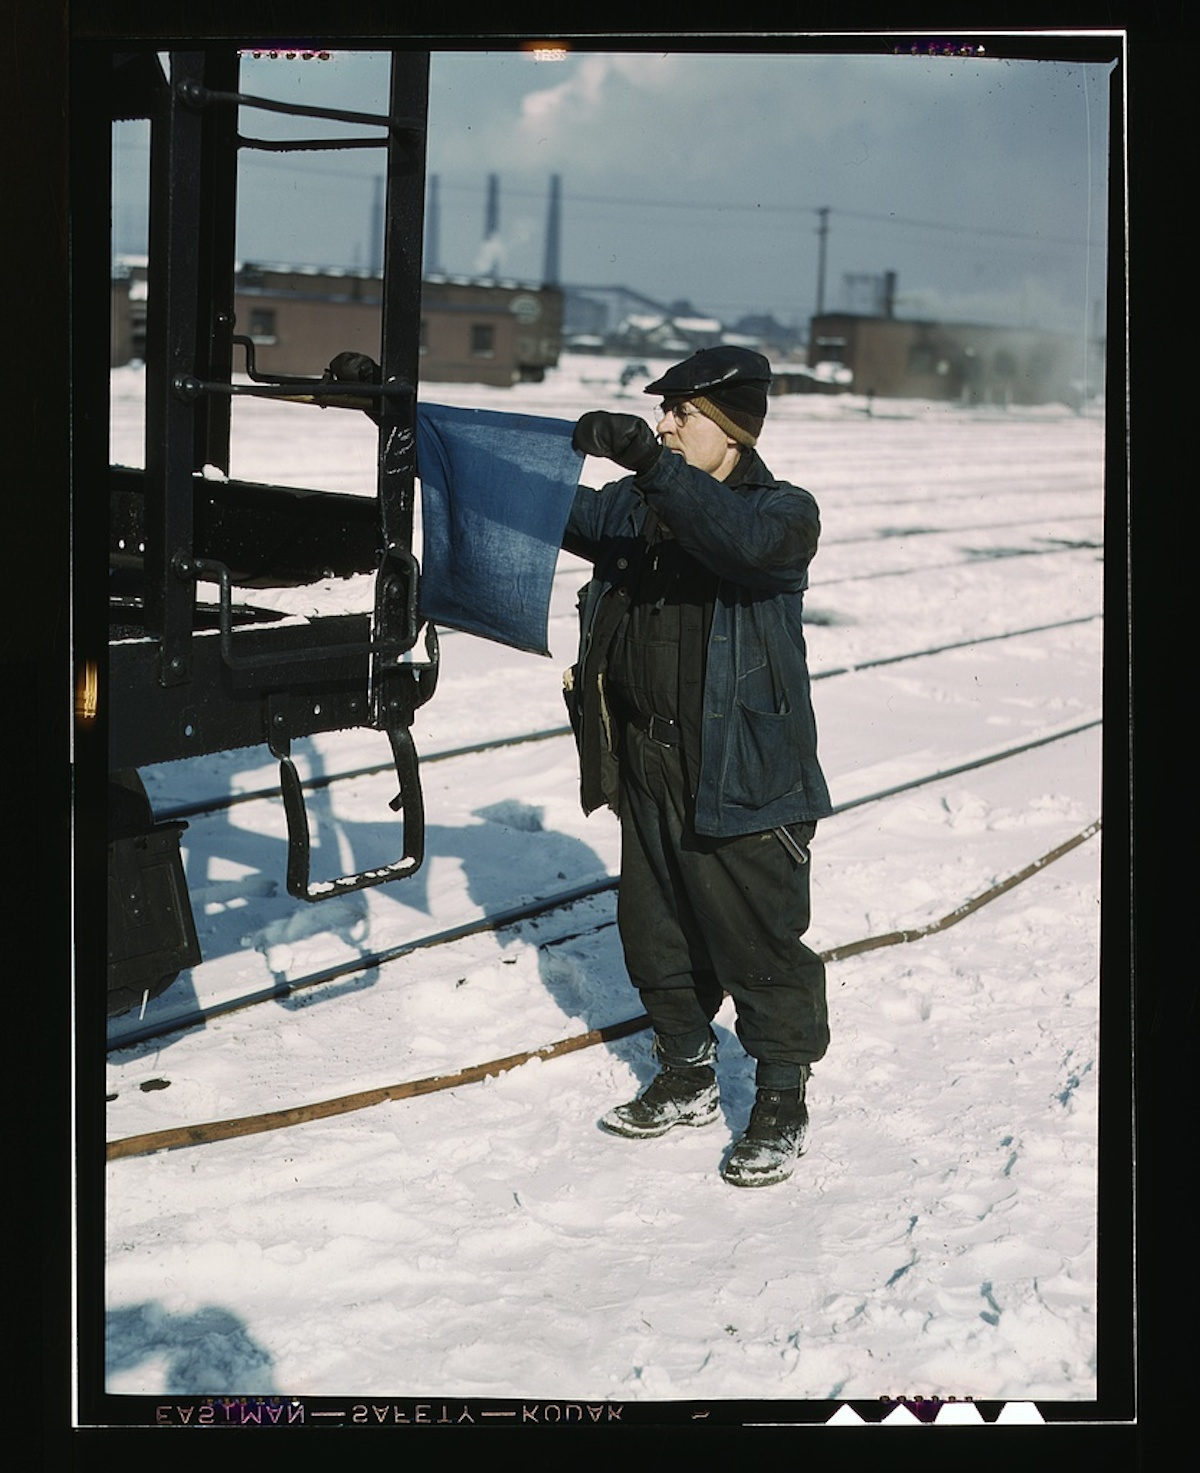 John Paulinski, car inspector, blue flagging a train for inspection, at Corwith yard, Santa Fe RR trip, Chicago, Ill. 1 transparency : color. Contributor: Delano, Jack Date: 1939